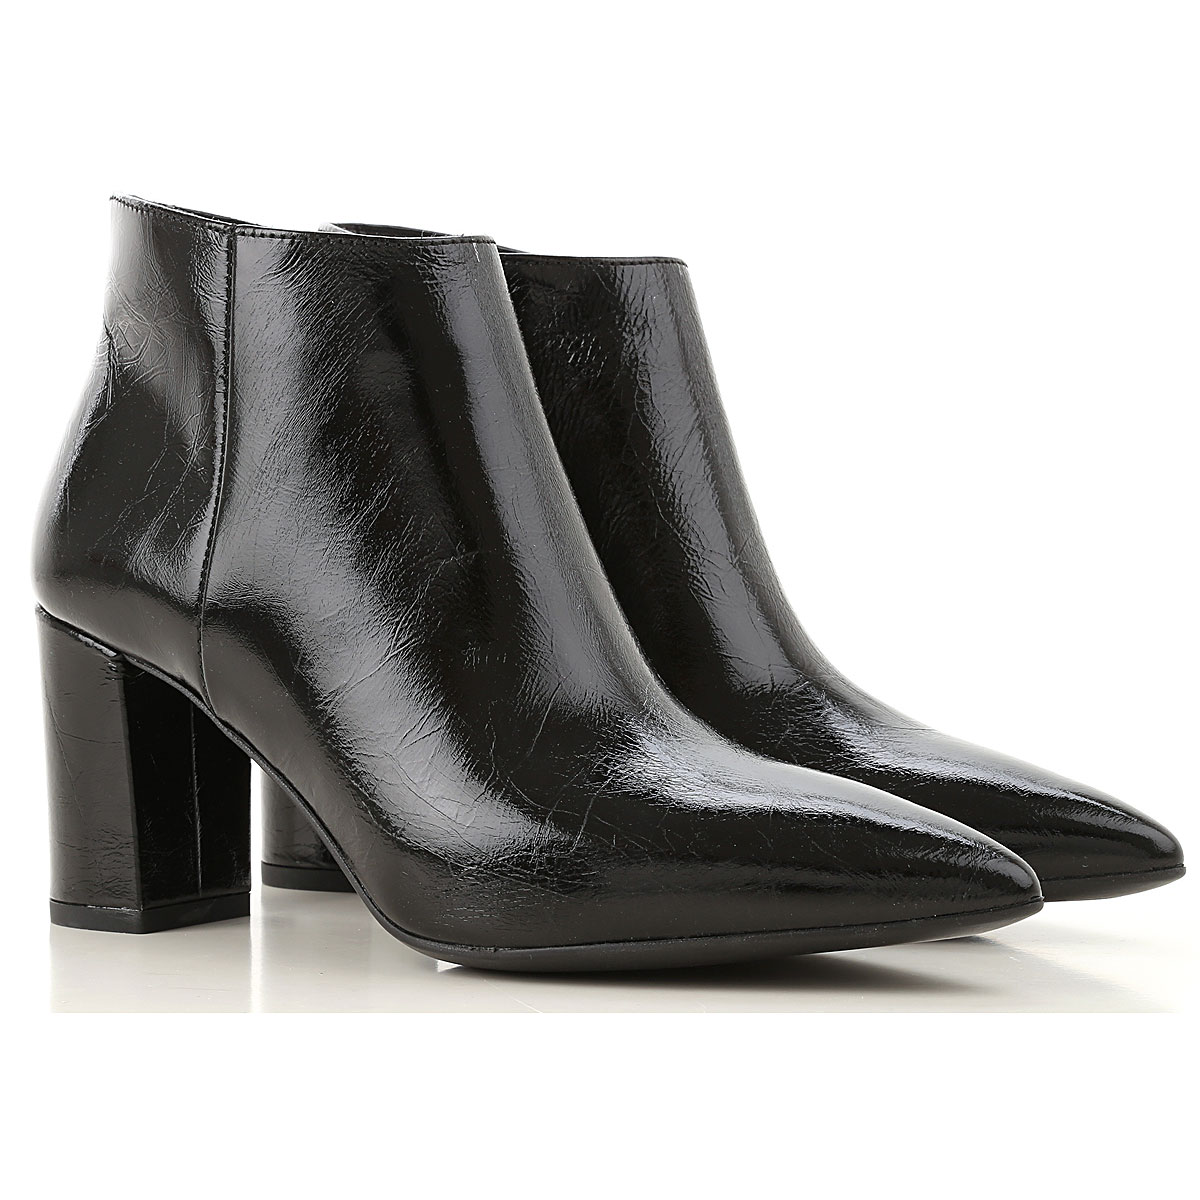 Janet & Janet Boots for Women, Booties On Sale, Black, Leather, 2019, 7 8